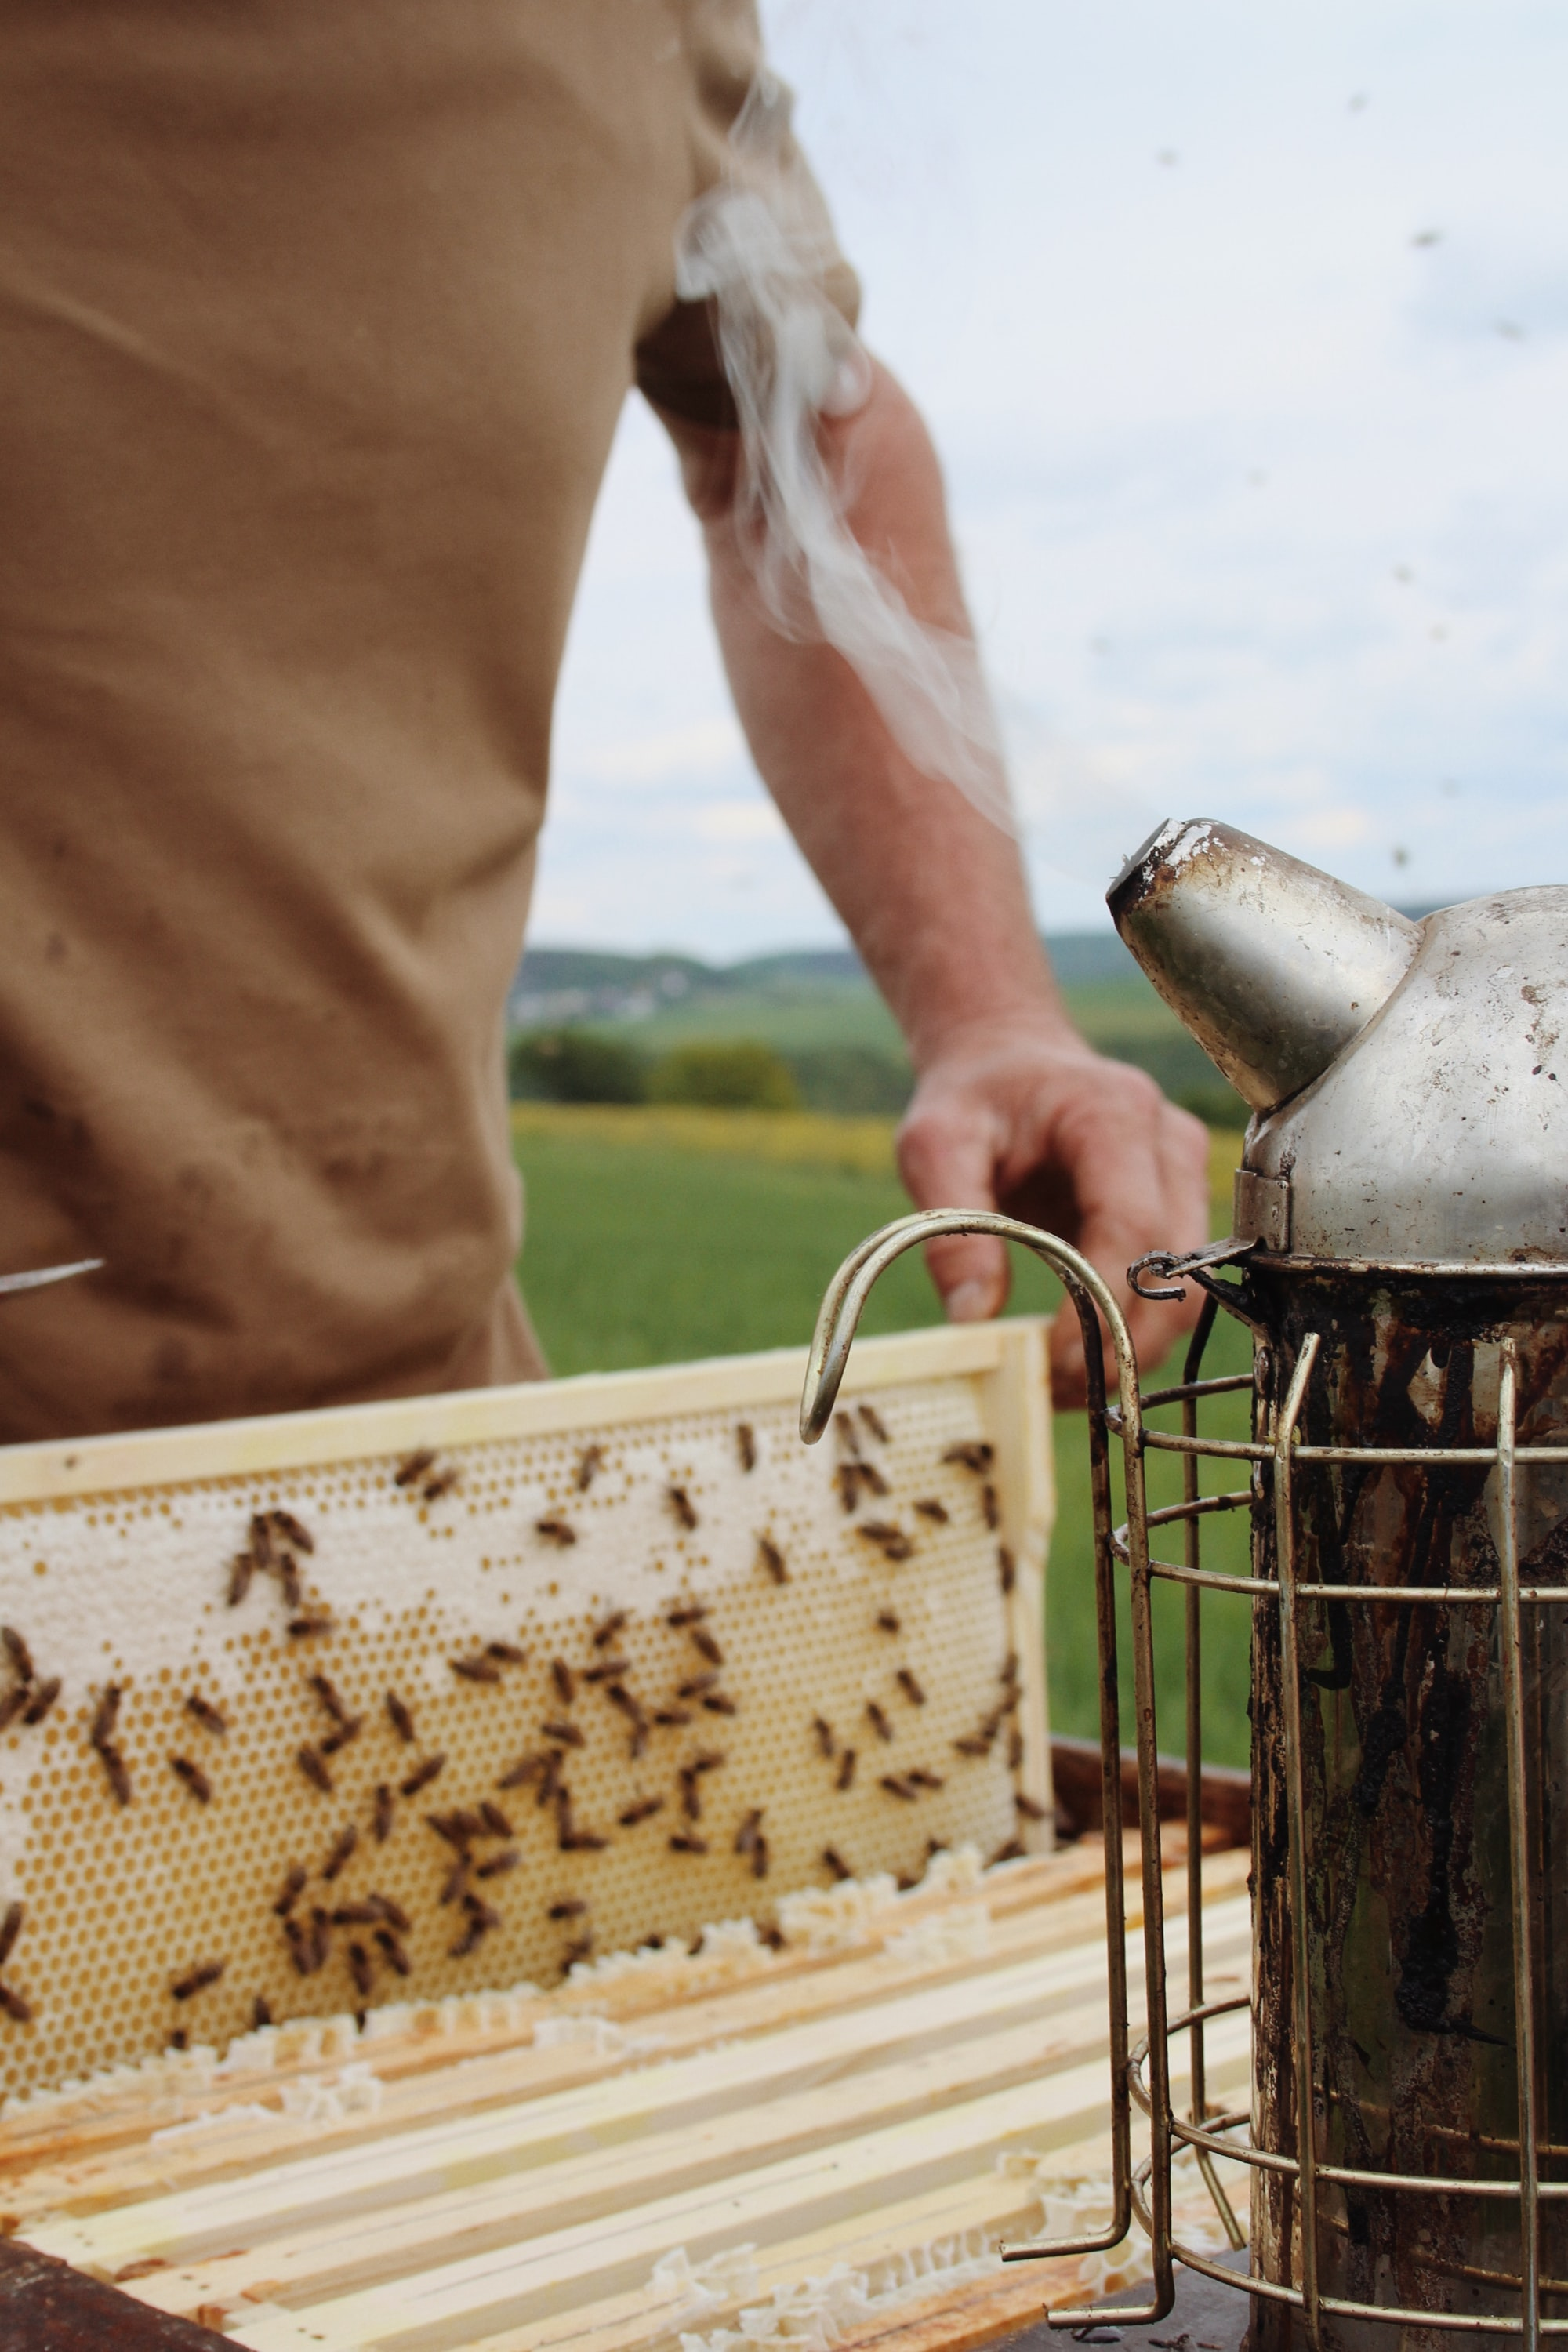 Beekeeper at work with his smoker tool